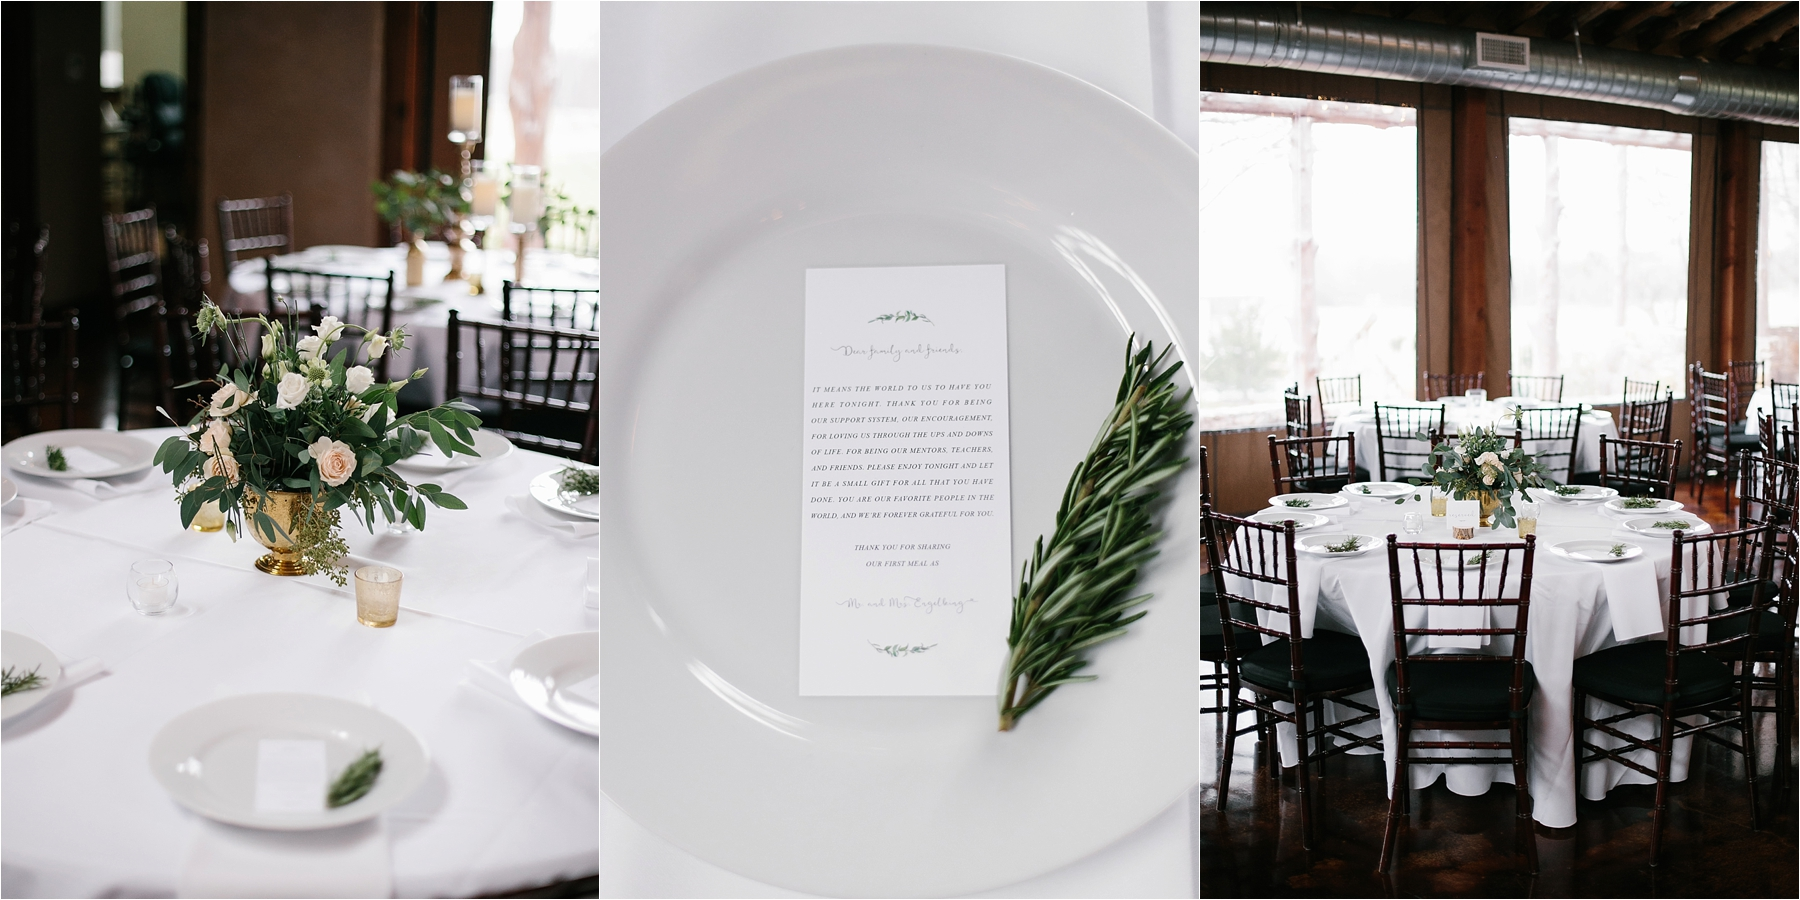 Lauren + Matt __ an intimate, emotional, blush pink, navy blue, and greenery toned wedding accents at the Brooks at Weatherford by North Texas Wedding Photographer Rachel Meagan Photography098